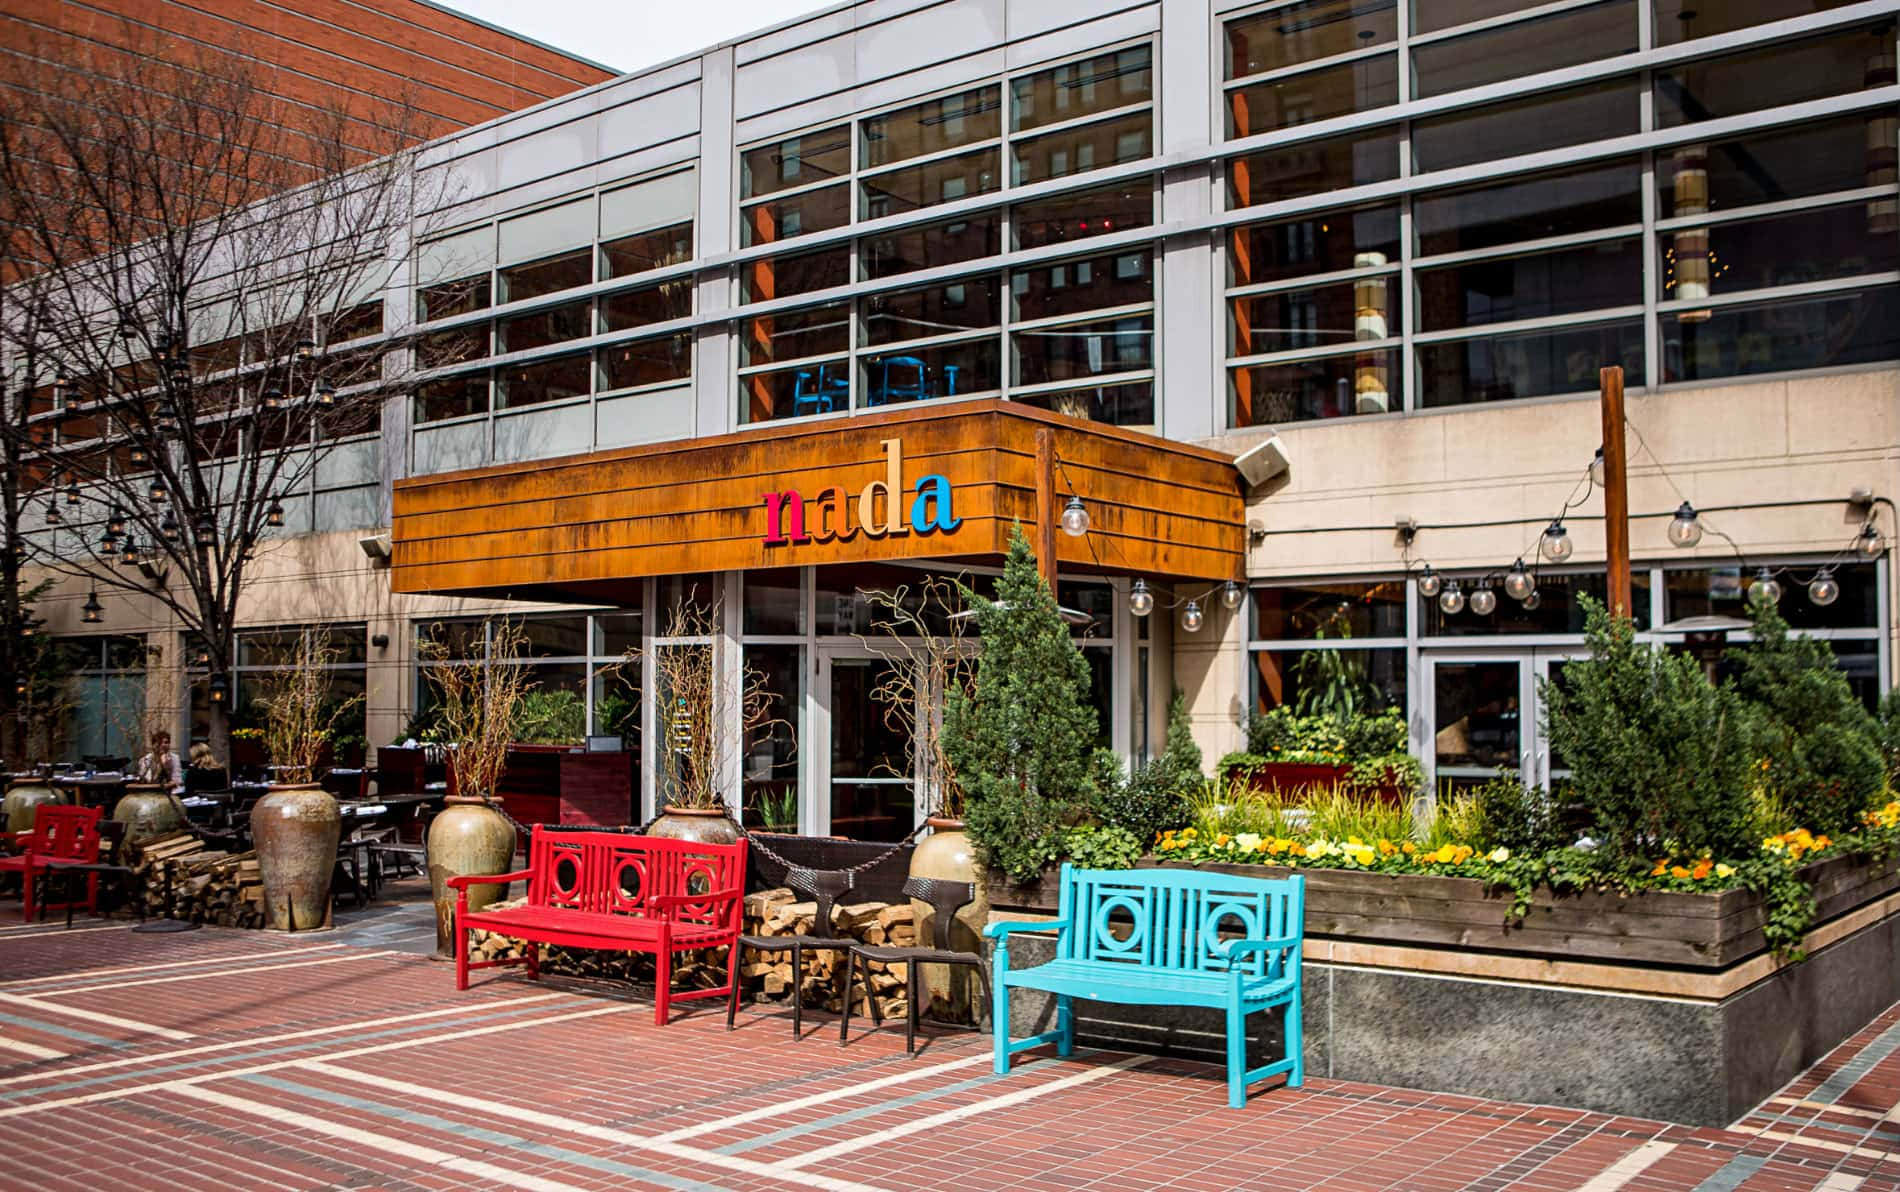 Long horizontal two-story restaurant building with 25 windows, aqua and red benches, planters with trees and yellow pansies